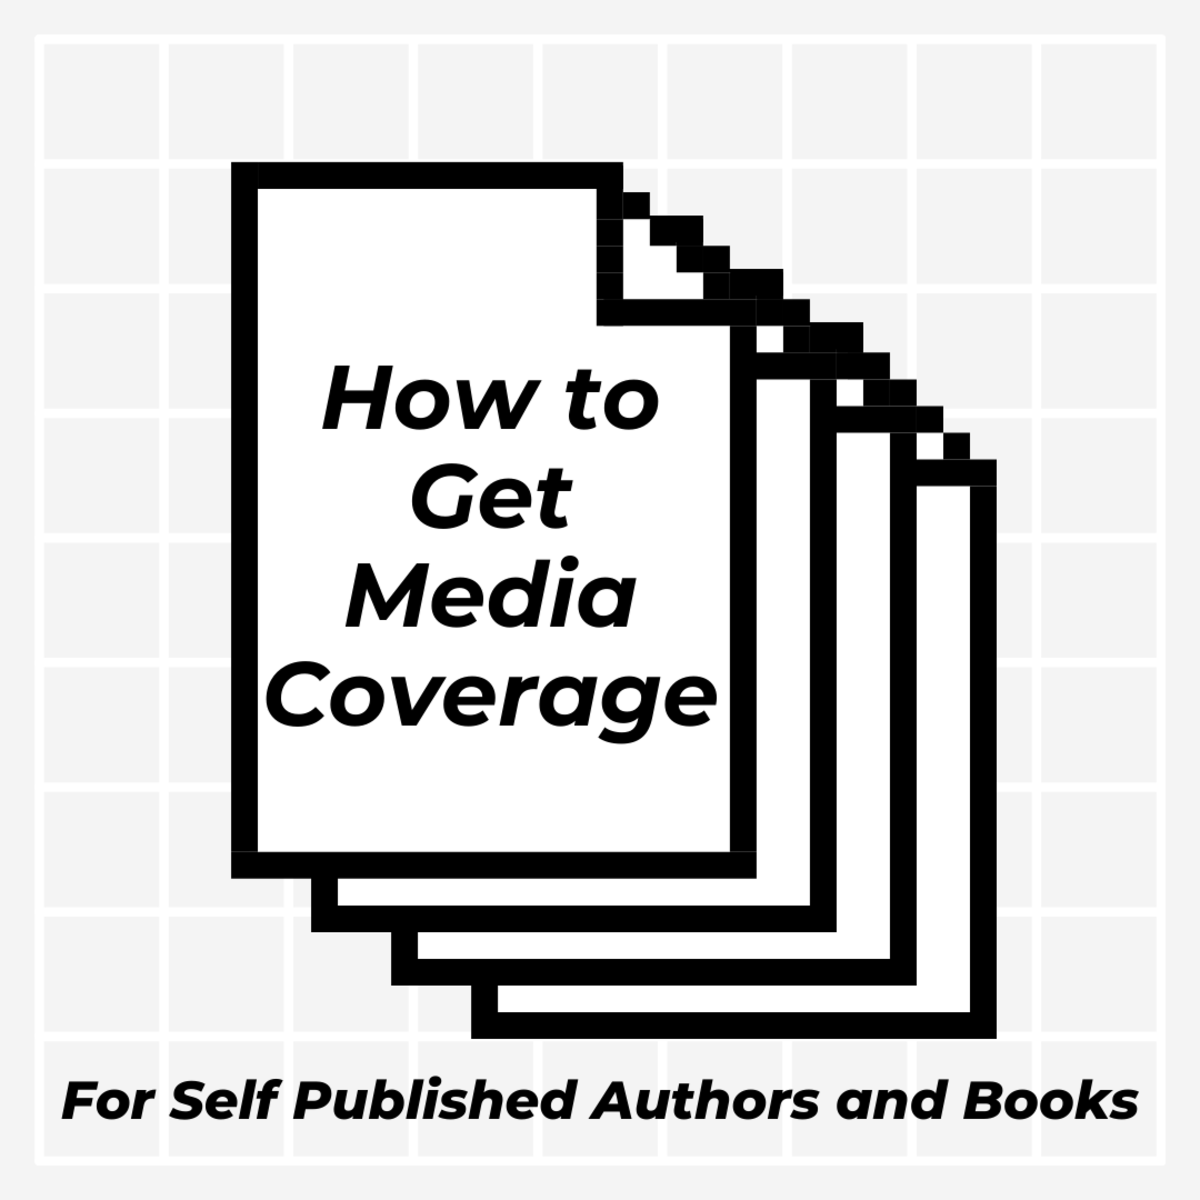 How to Get Media Coverage for Self Published Authors and Books